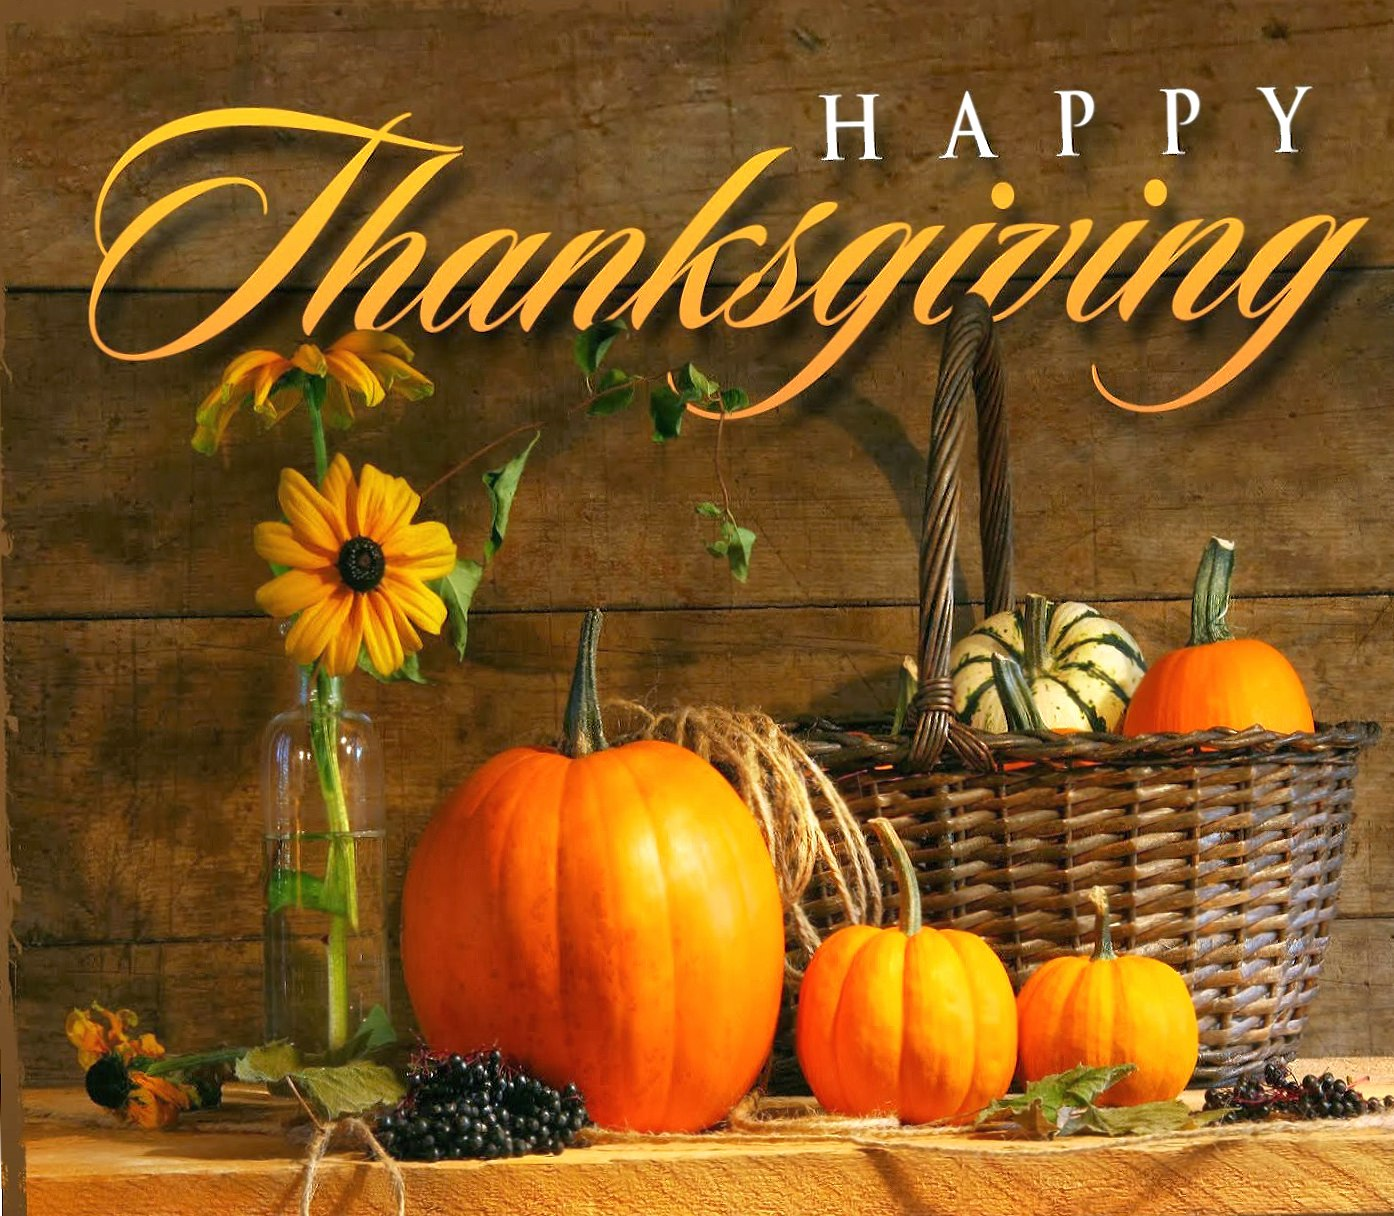 Happy Thanksgiving wallpapers HD quality